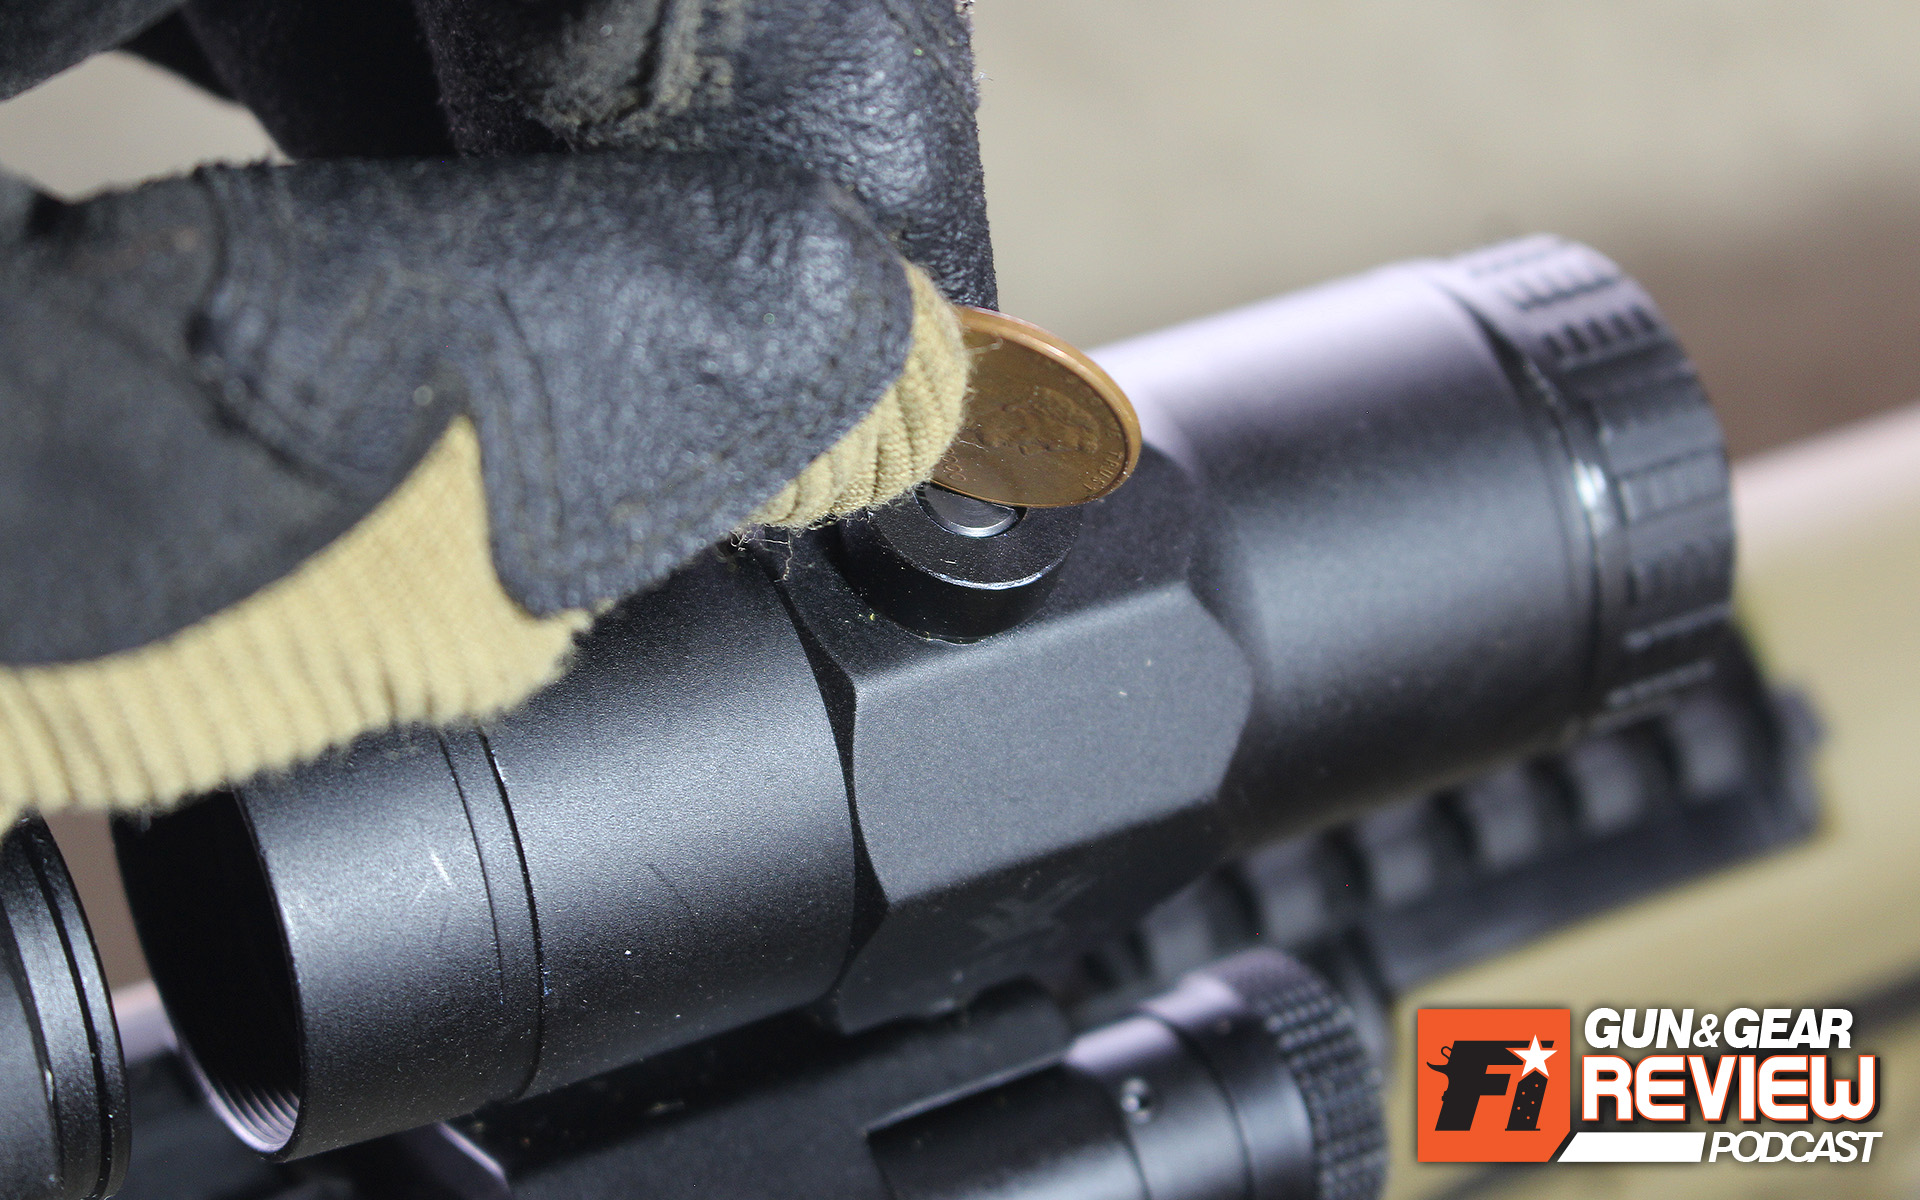 A flathead screwdriver, pocket knife, or a penny or dime can be used to zero the partnered red dot's reticle within the magnifier's view.